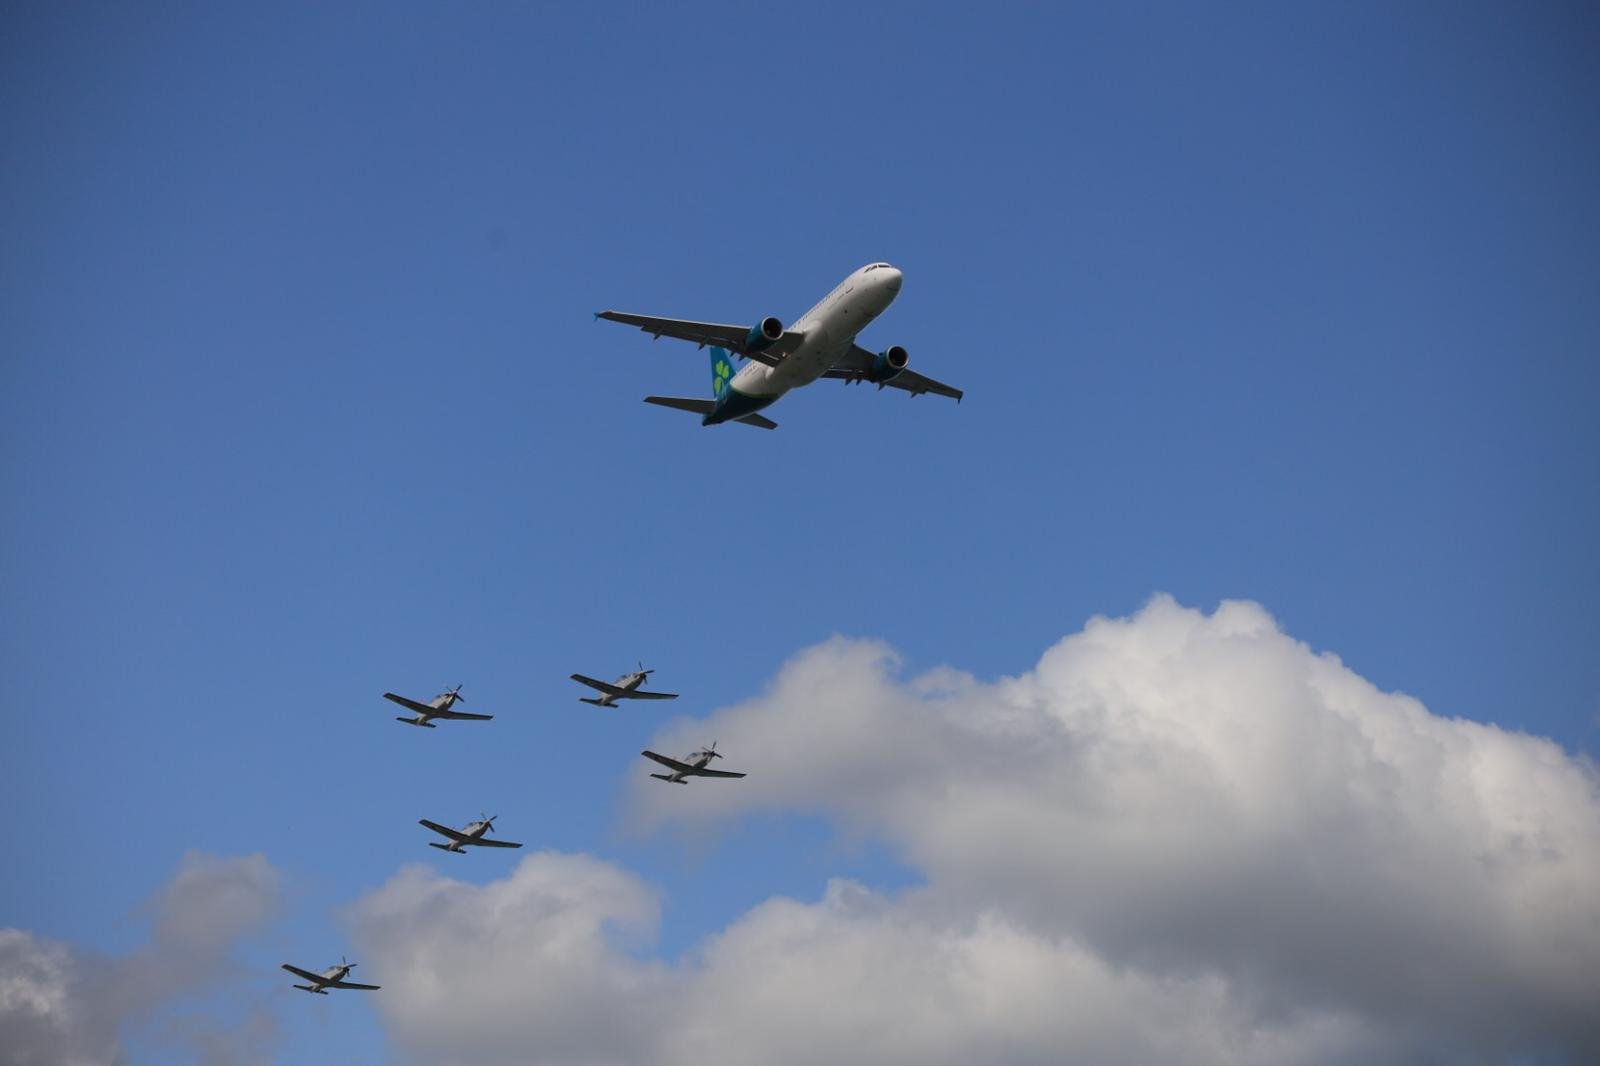 Aer Lingus jet flying in formation with the Irish